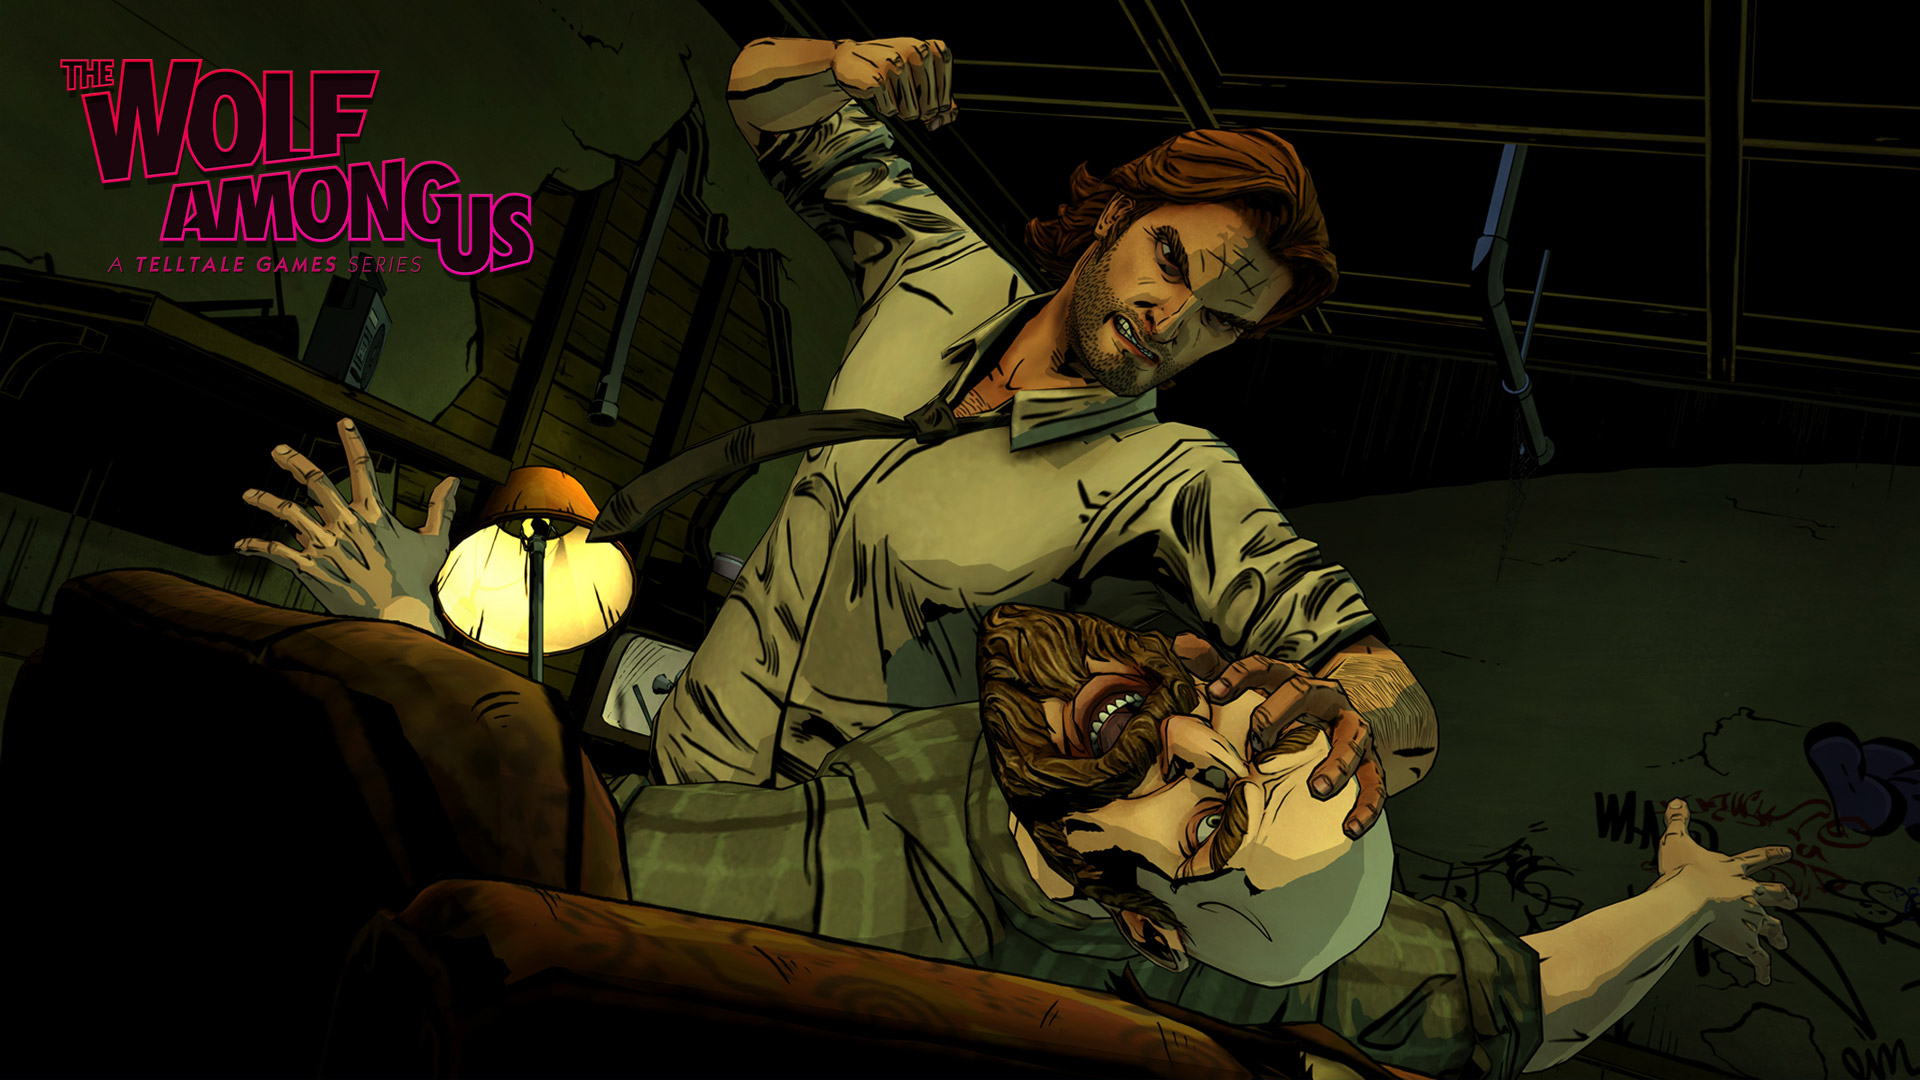 The Wolf Among Us Wallpaper in 1920x1080